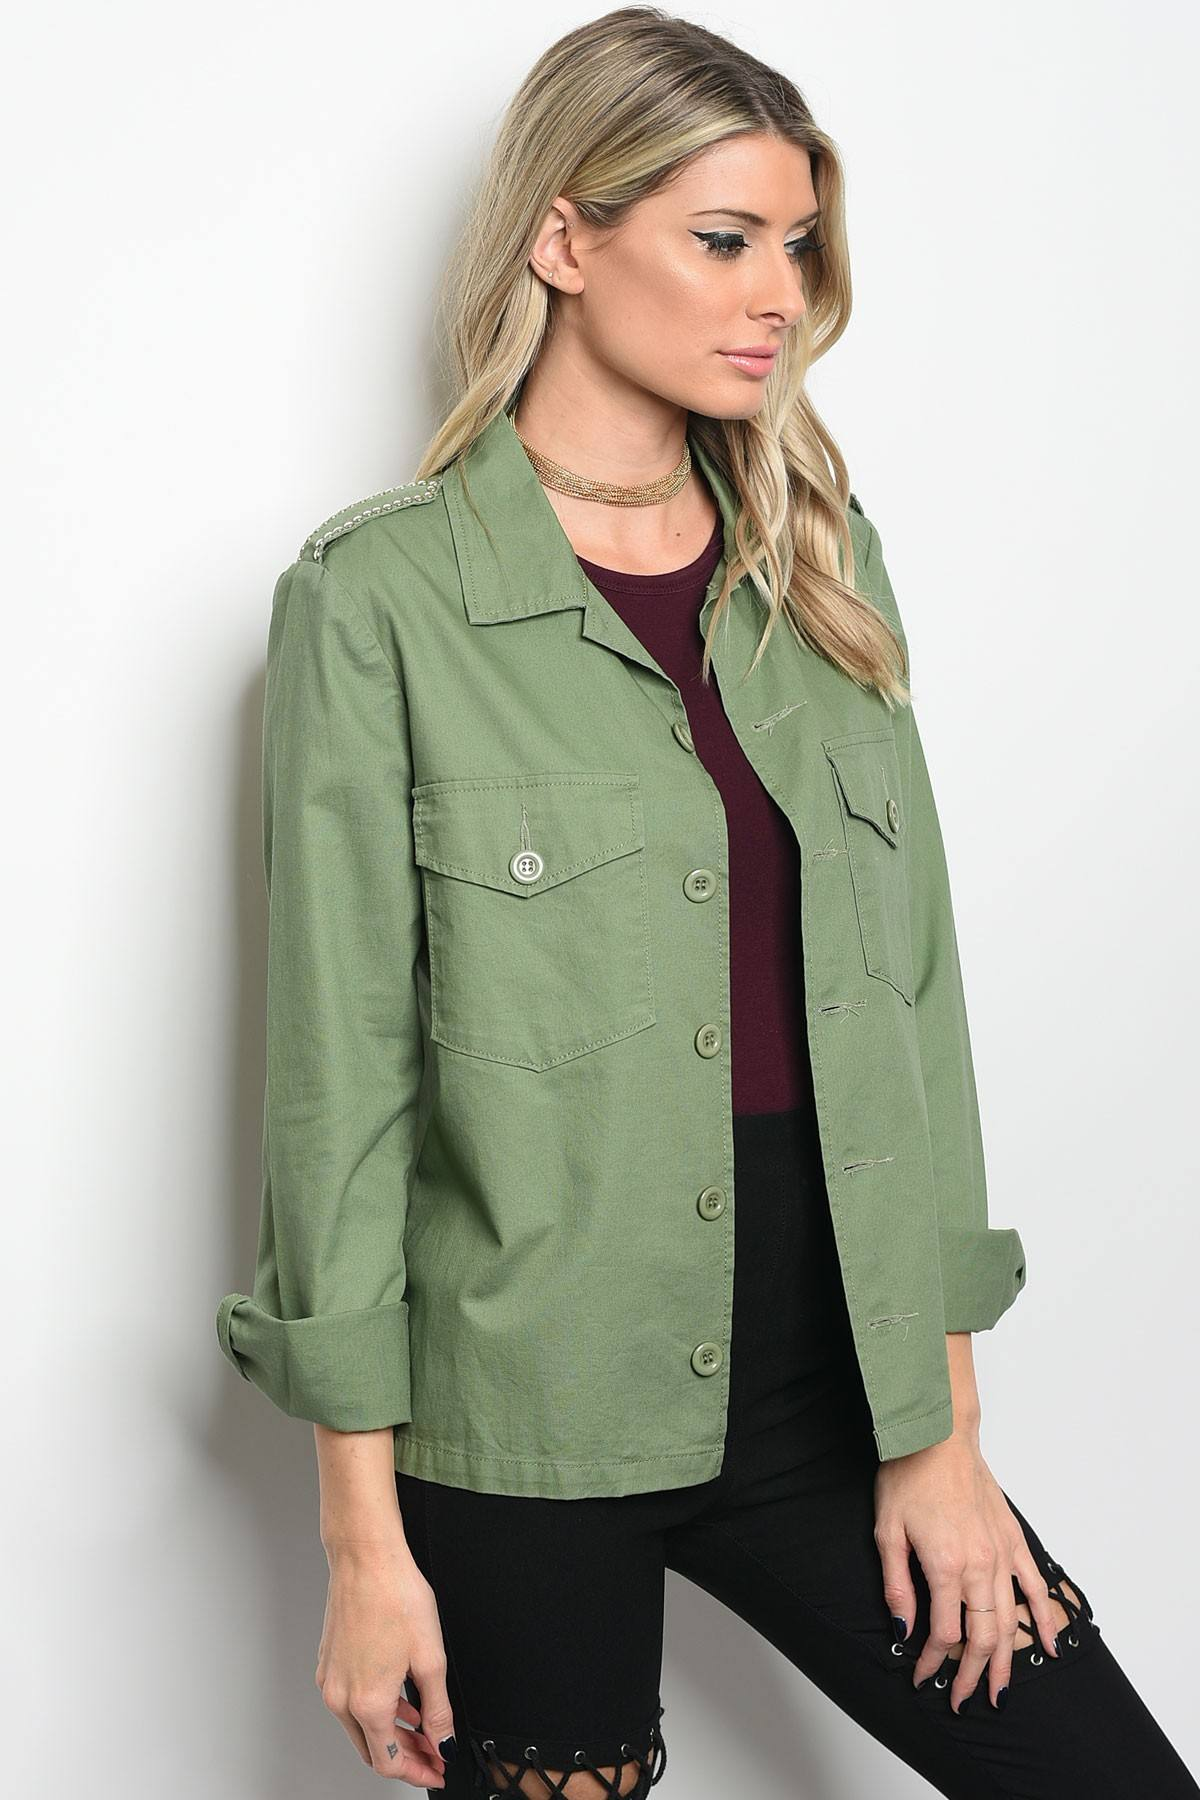 Ladies fashion light weight utility jacket with pocket details and a collard neckline